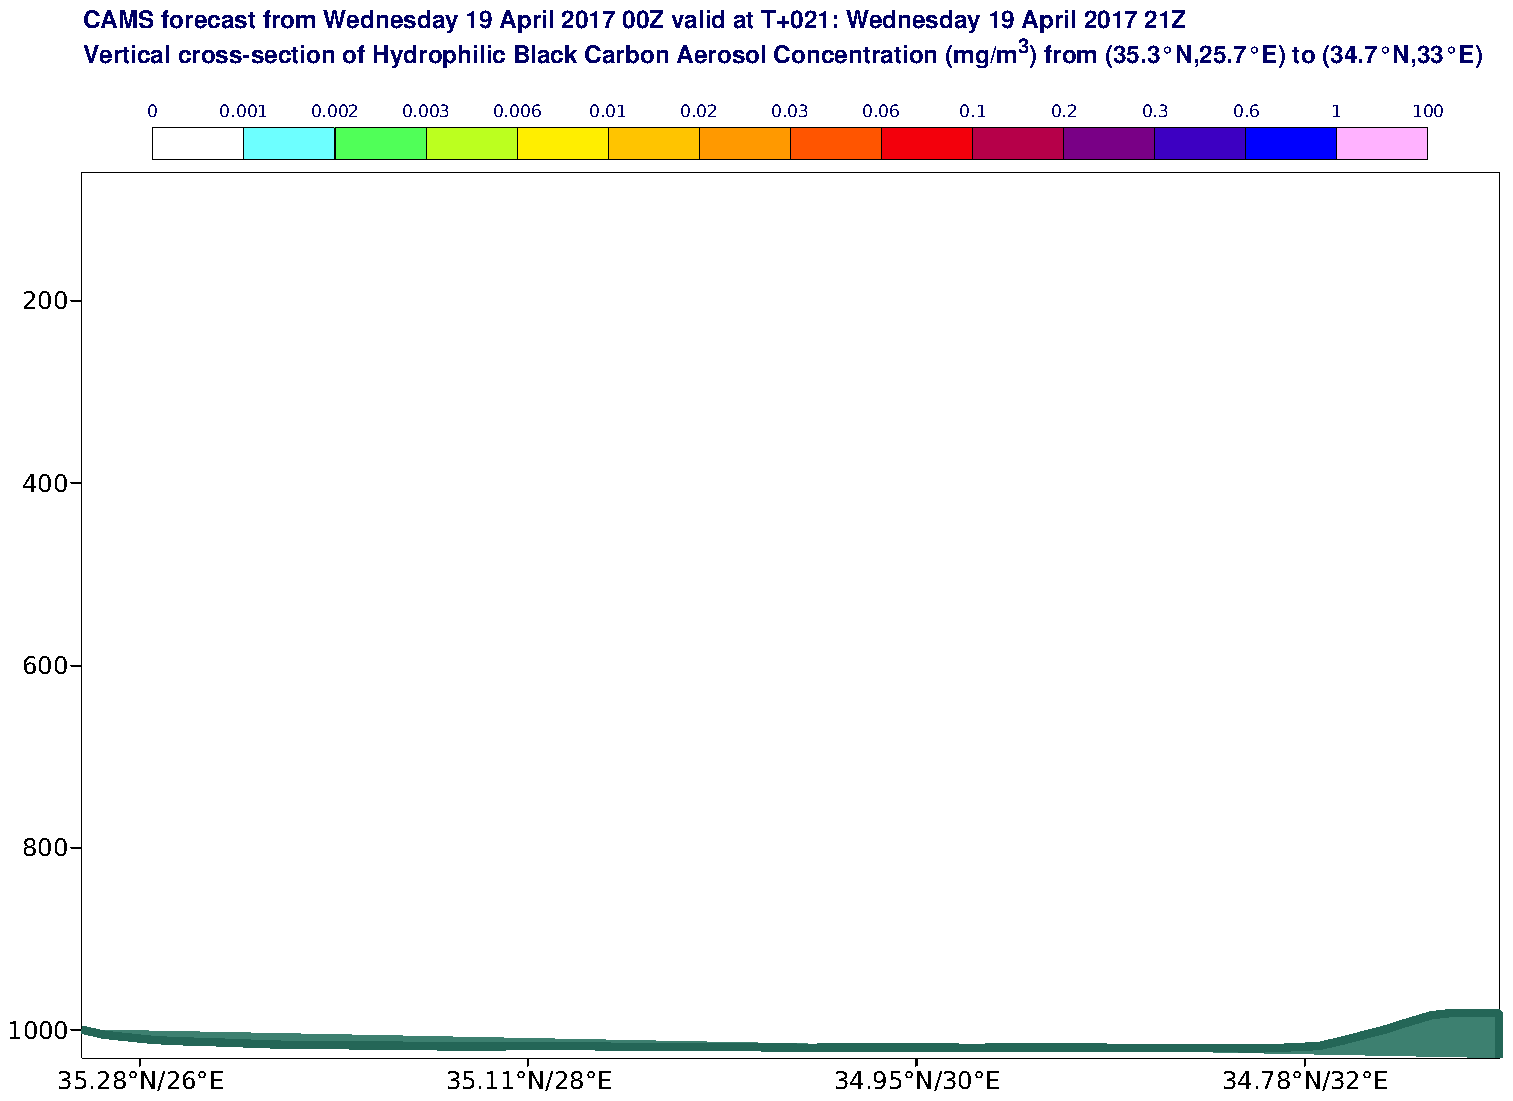 Vertical cross-section of Hydrophilic Black Carbon Aerosol Concentration (mg/m3) valid at T21 - 2017-04-19 21:00